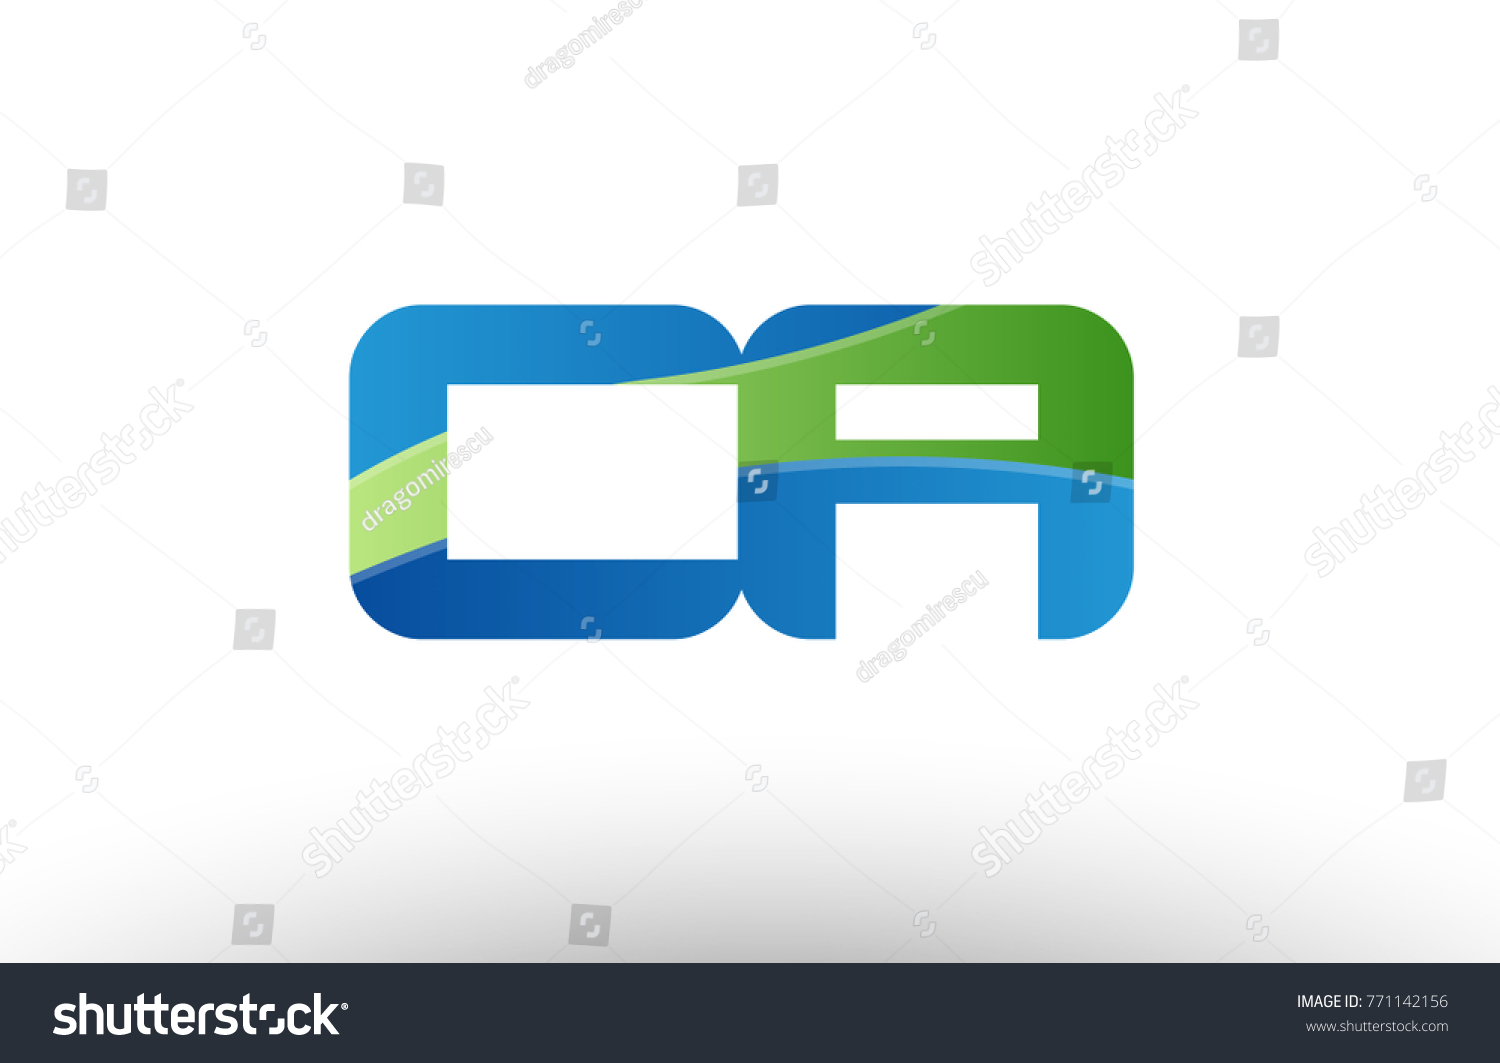 Design alphabet letter logo combination ca stock vector 771142156 design of alphabet letter logo combination ca c a with blue green color suitable as a logo biocorpaavc